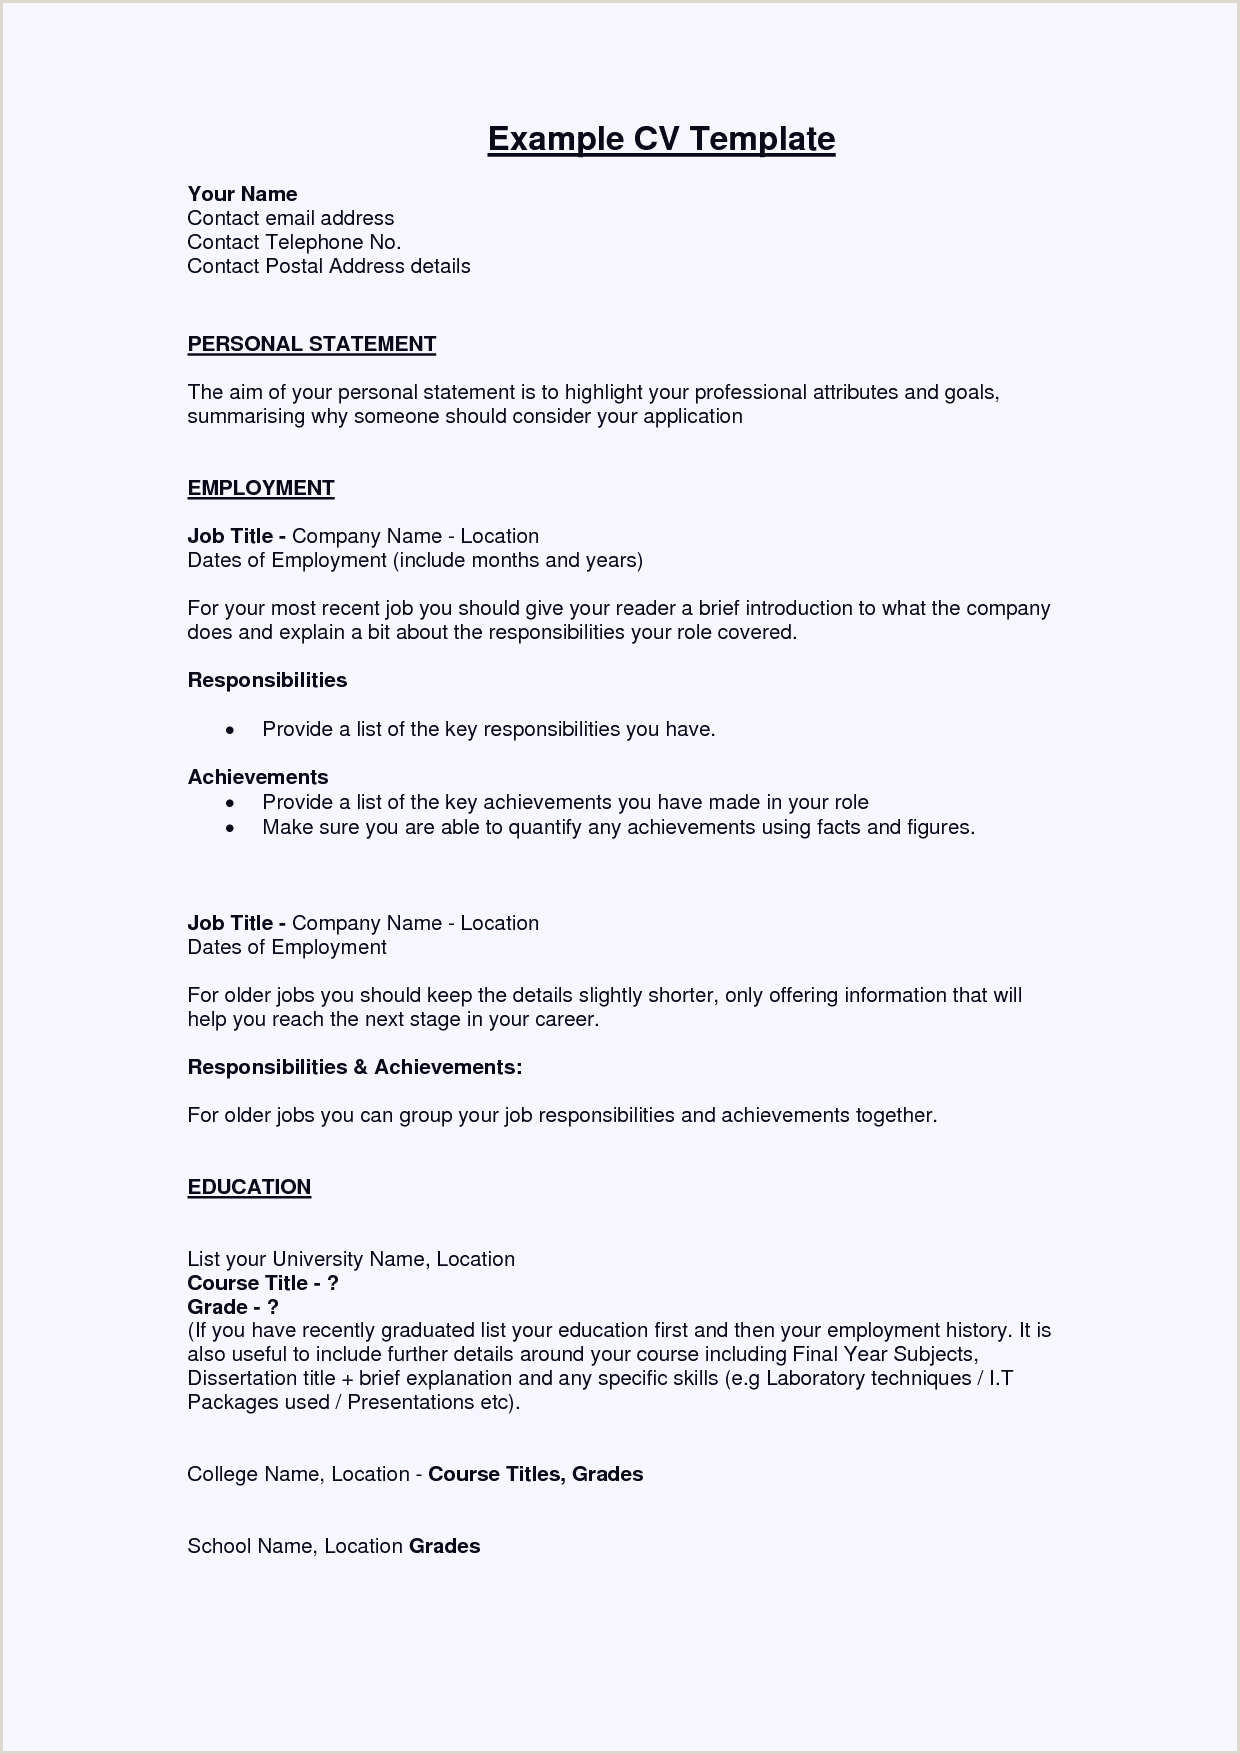 Latest Professional Cv format 2017 Cv Informatique Exemple Beau Modele De Cv 2018 Exemple